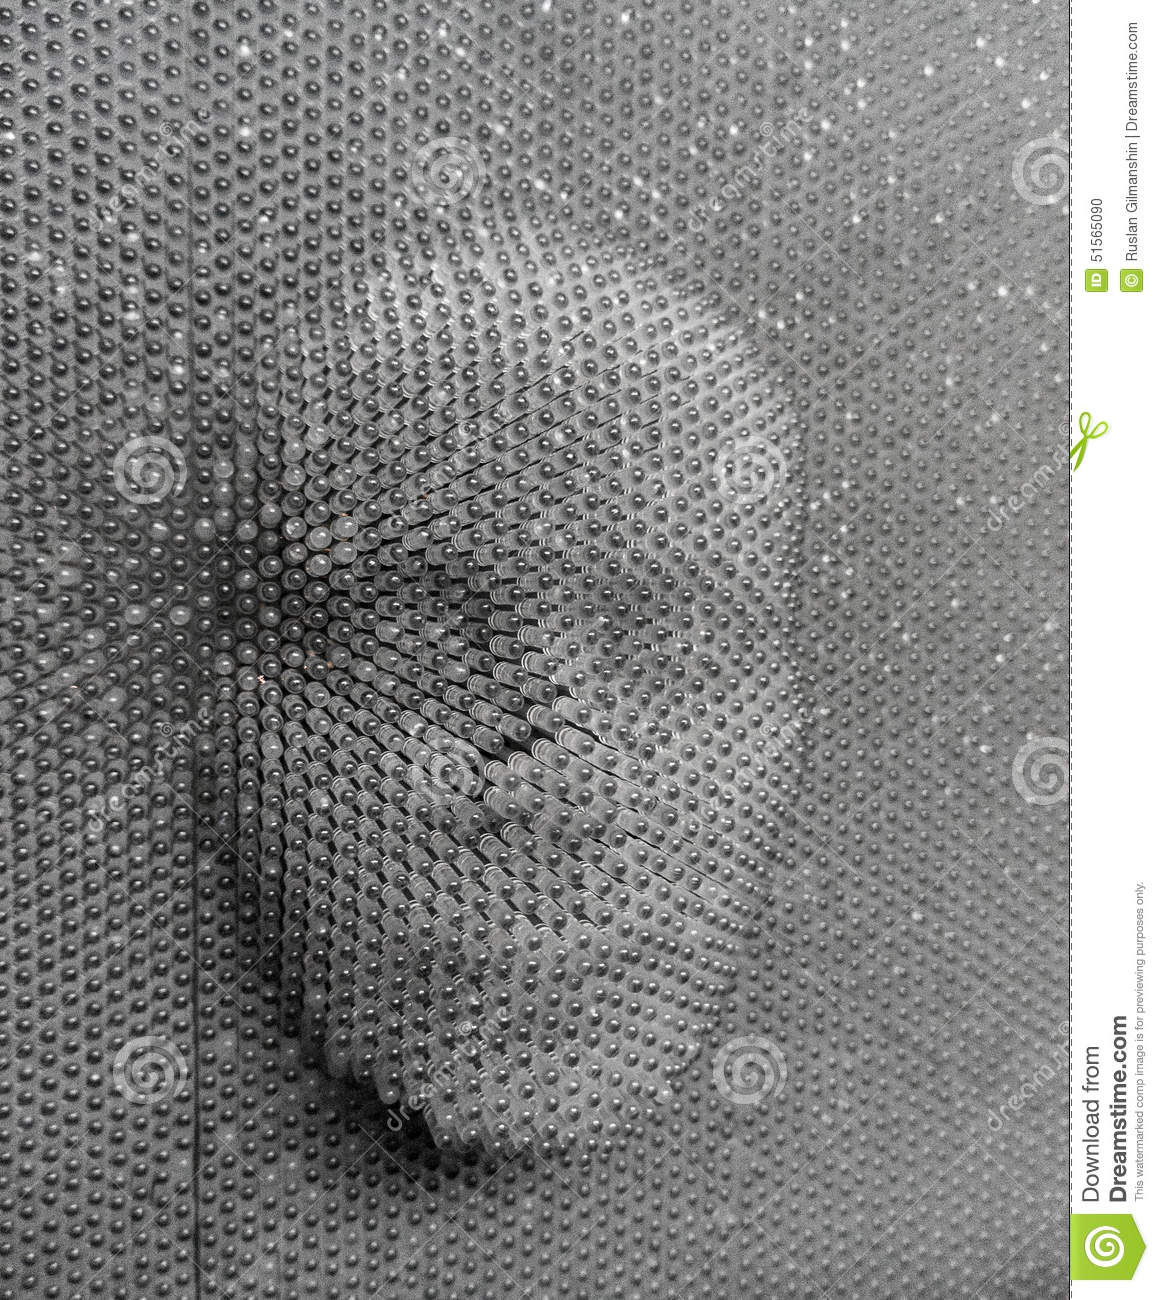 Human Face Made From Pin Board Toy Stock Photo Image 51565090